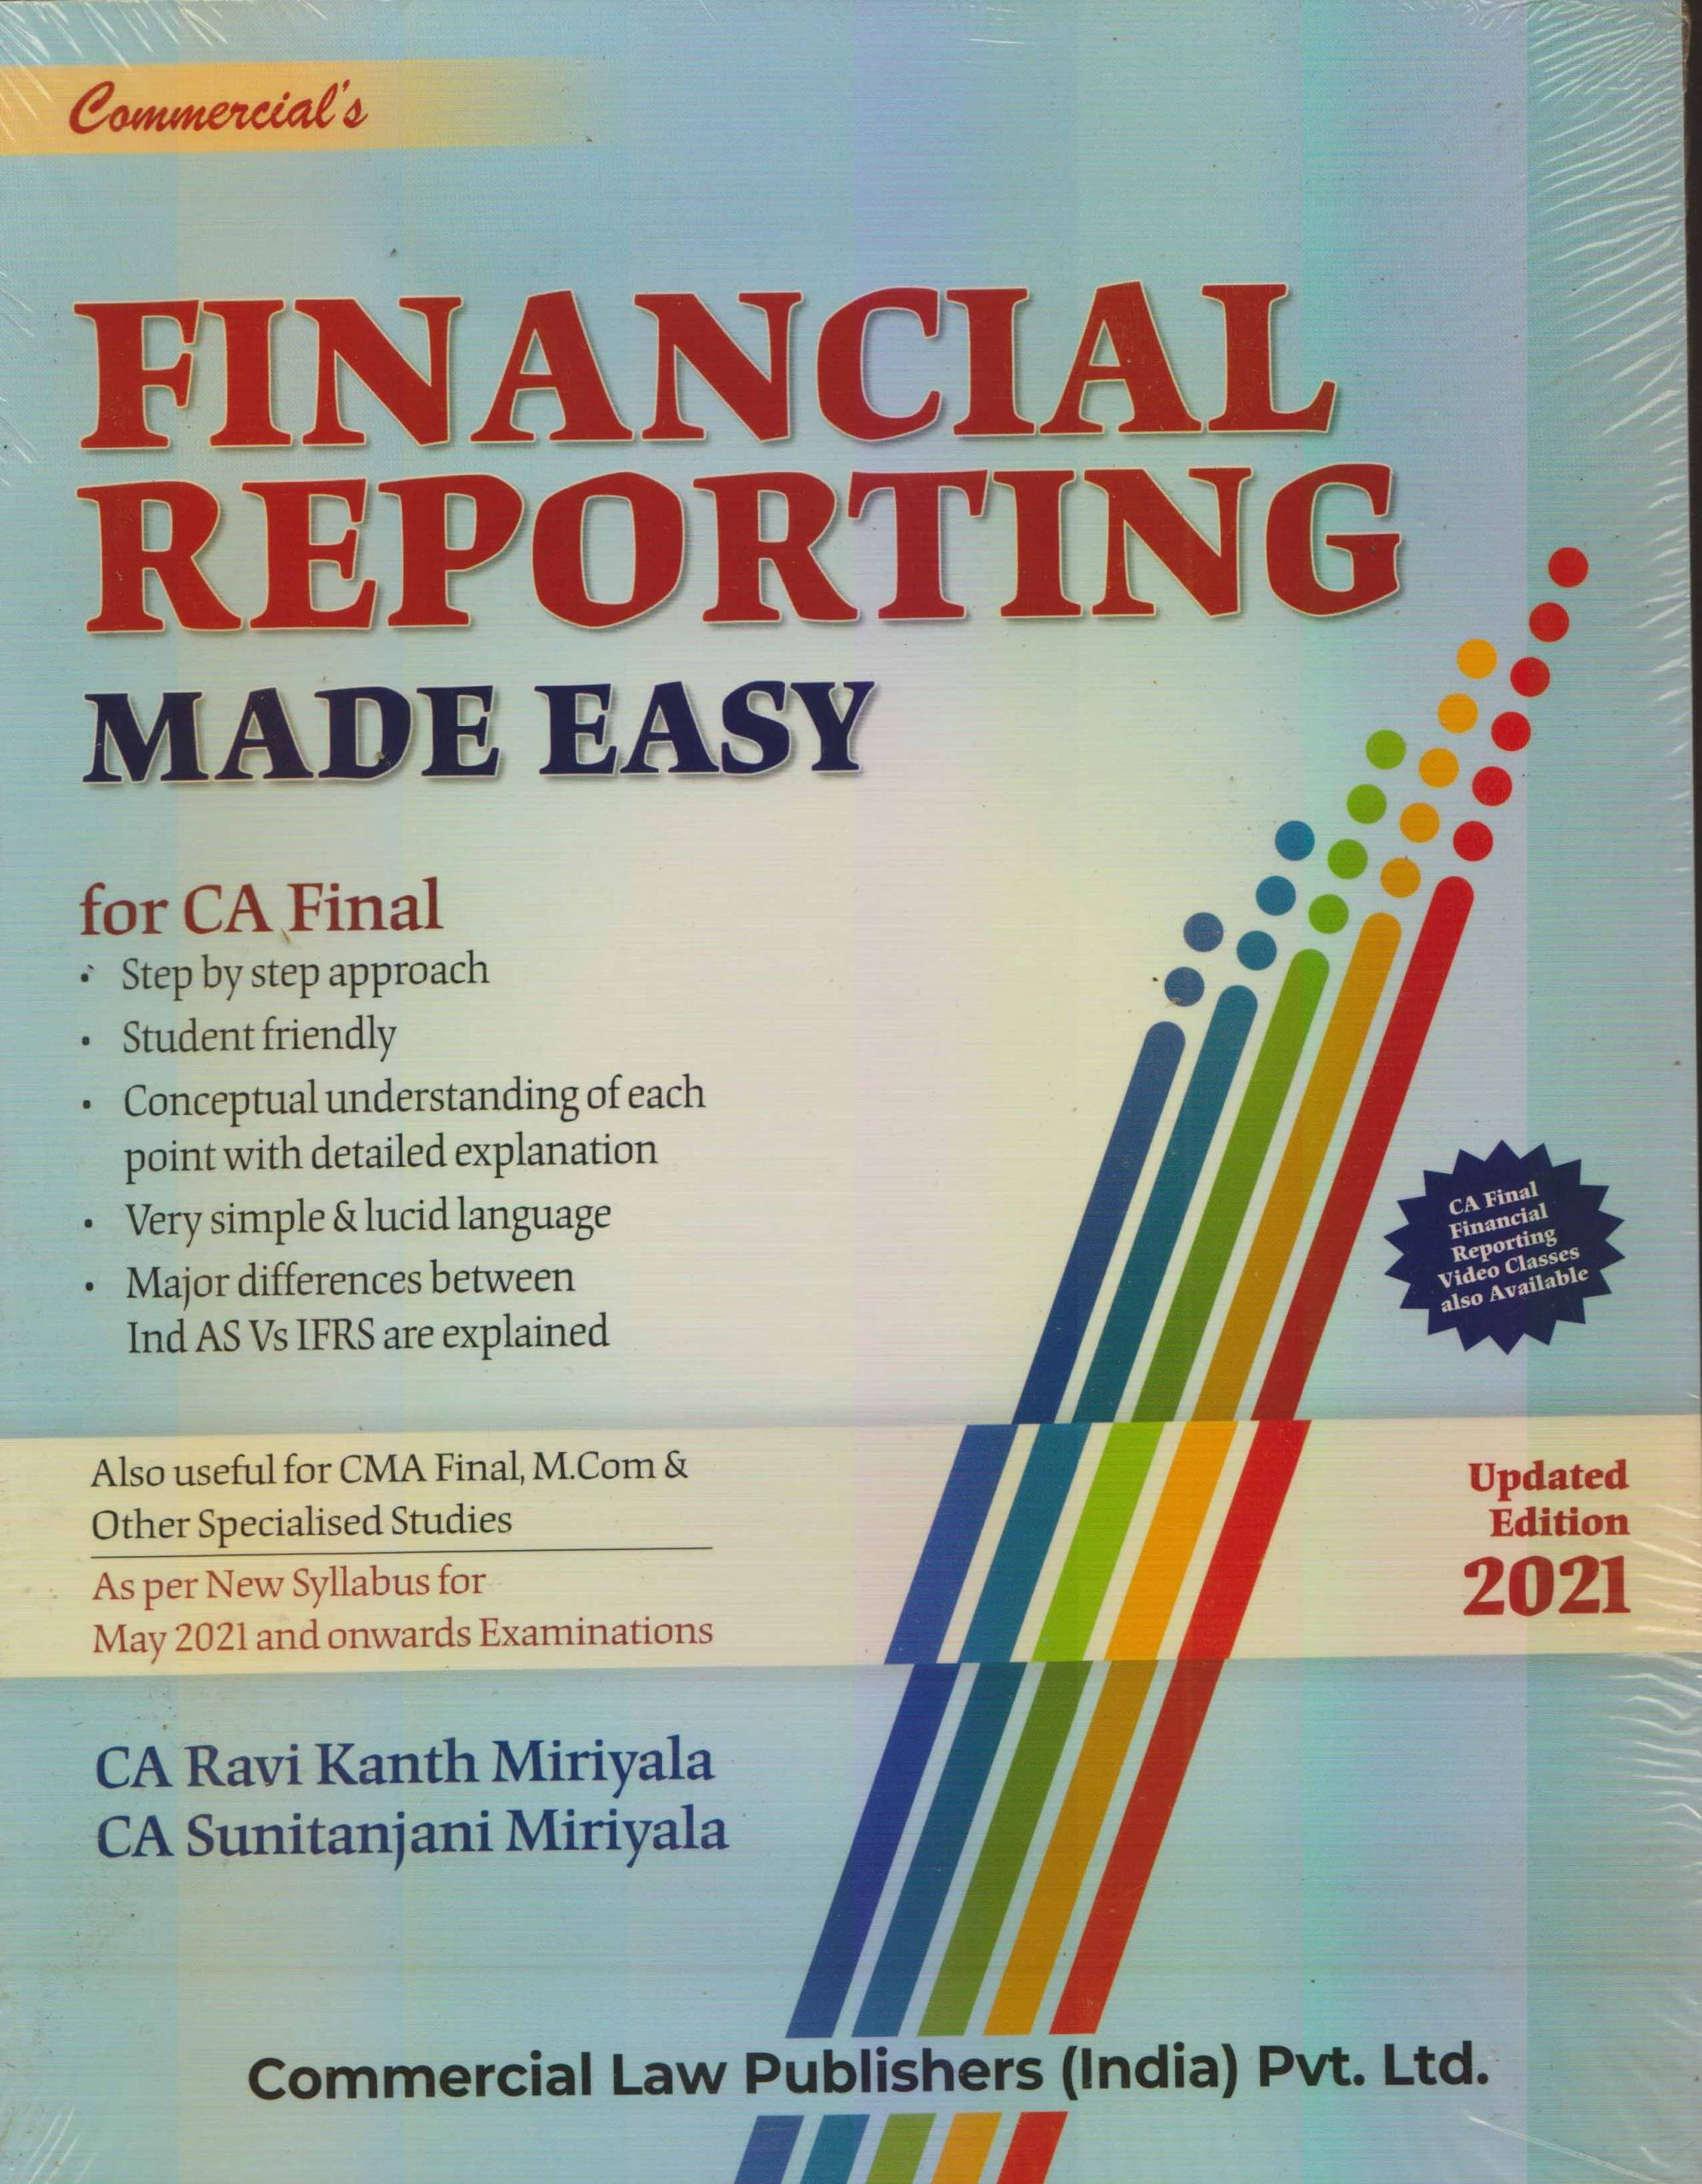 Commercial Financial Reporting Made Easy For CA Final by CA Ravi Kanth Miriyala & CA Sunitanjani Miriyala (Commercial law publishers) for 2021 Exam